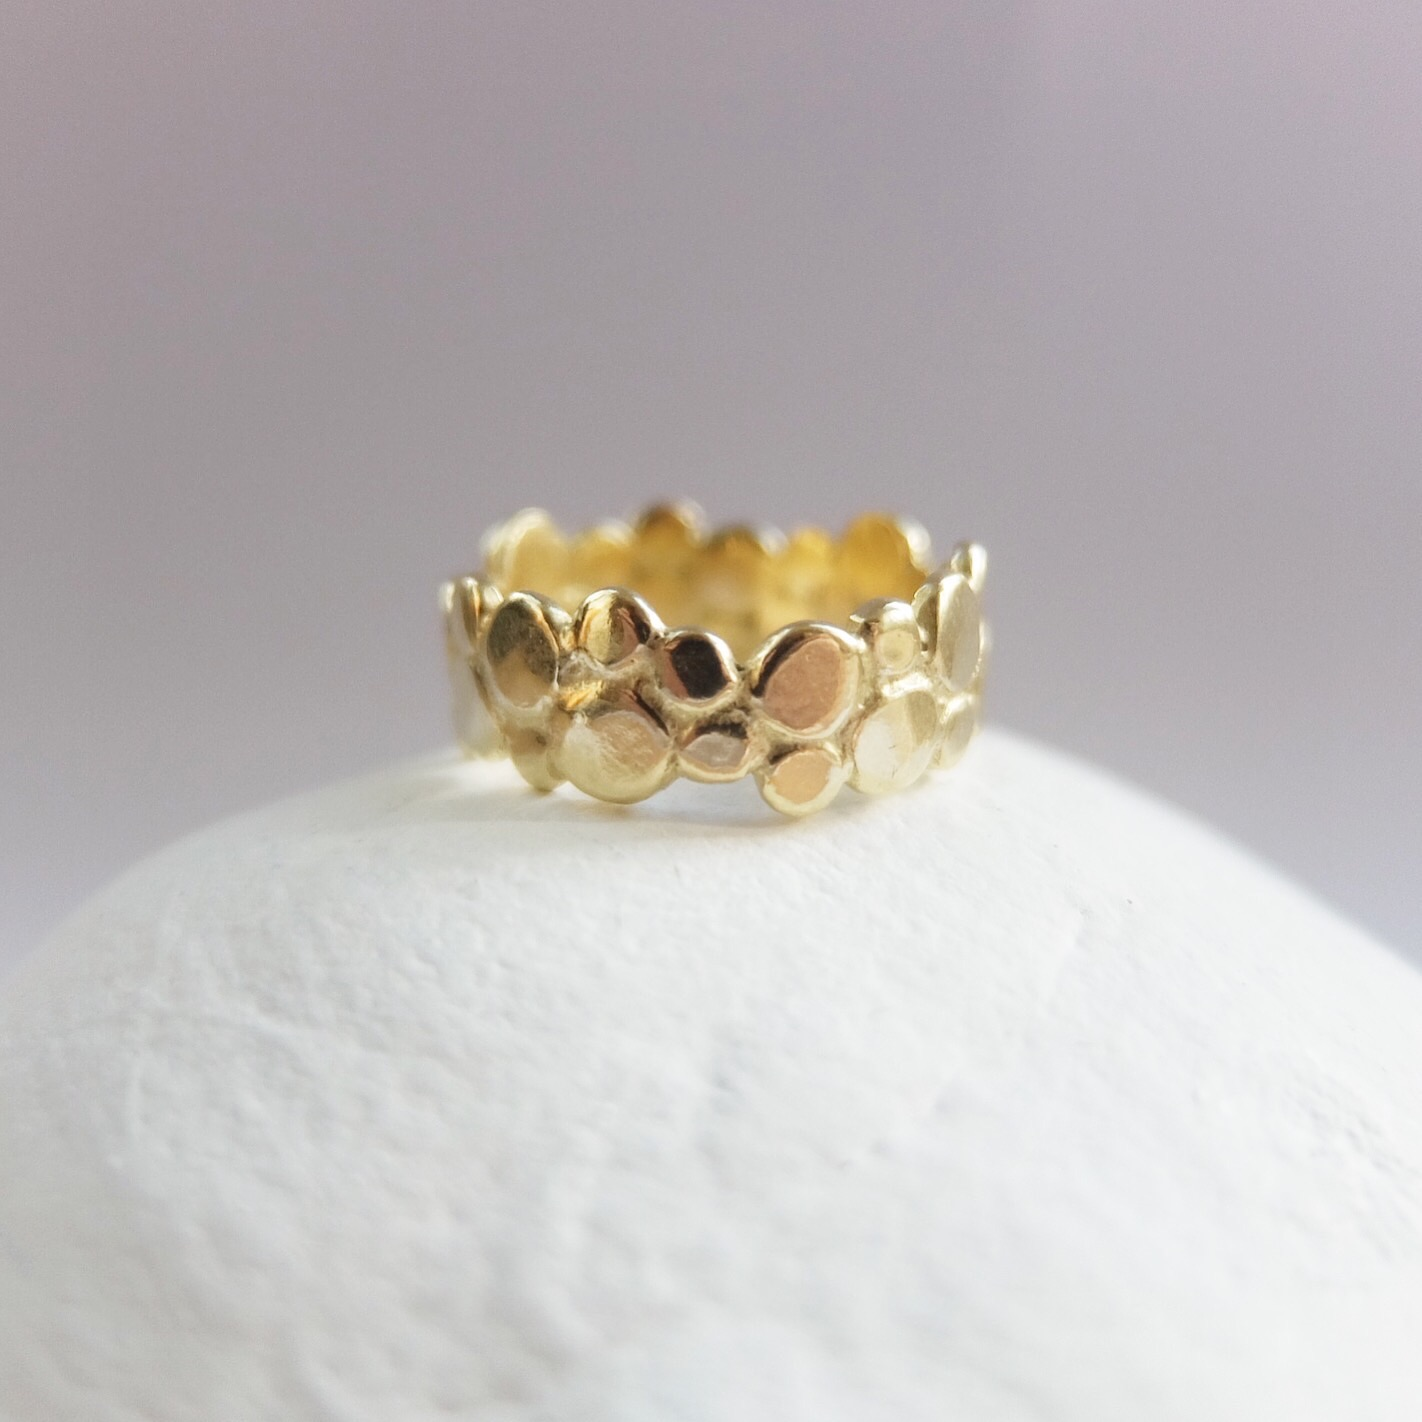 contemporary alternative wedding bands rings gold pebble ring coastal inspired by sea 18ct yellow gold contemporary jewellery wedding ring organic made in uk devon exeter cornwall jasmine bowden.jpg